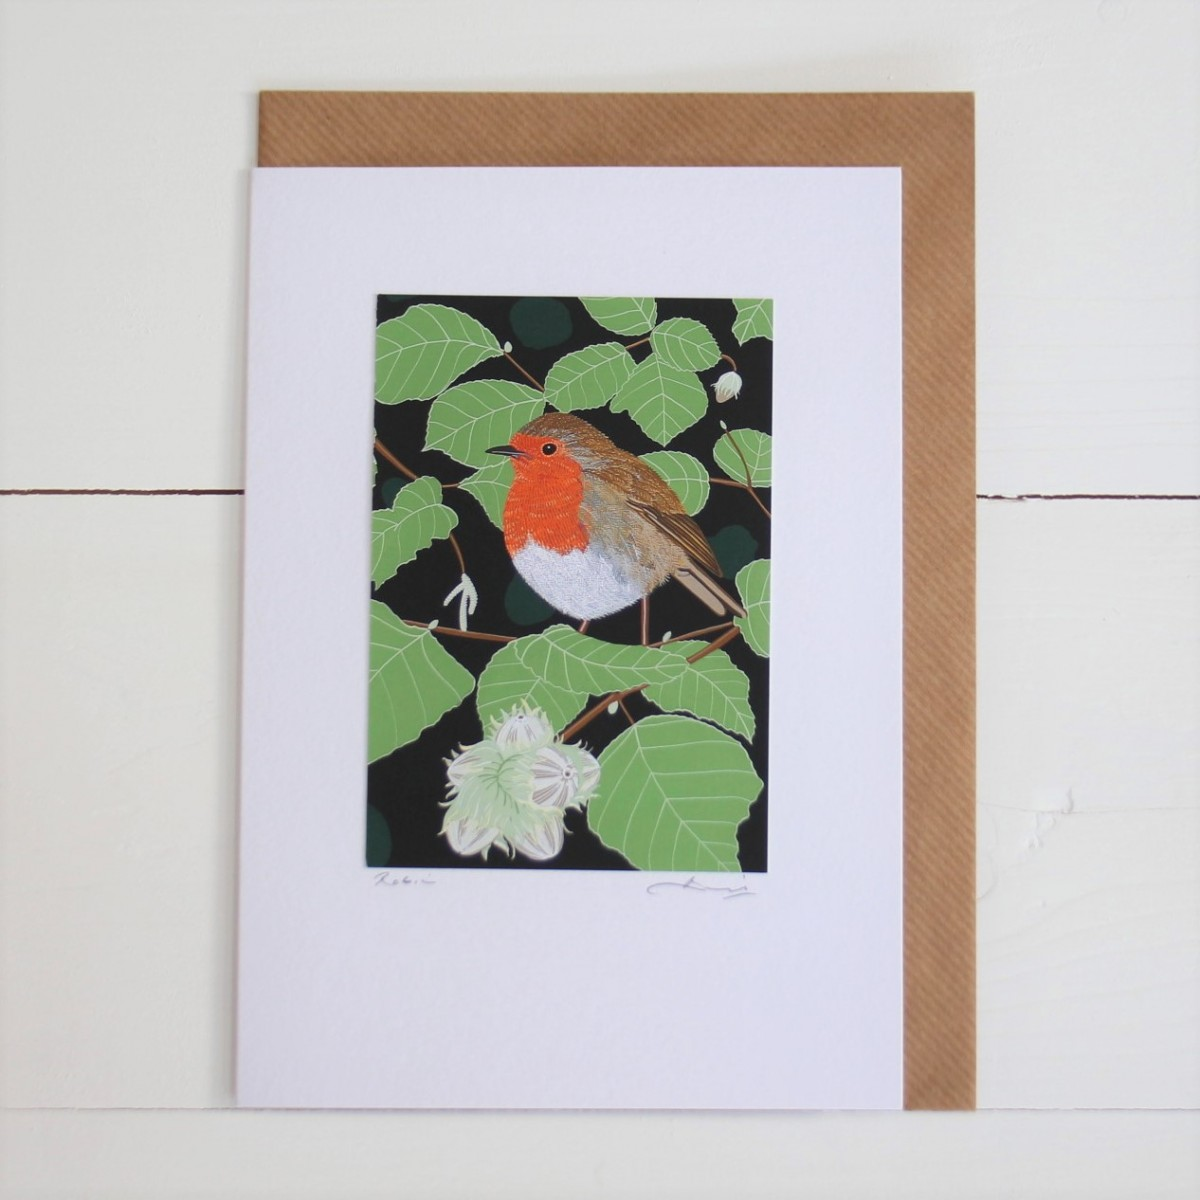 Robin Bird Flower Handmade Hand Titled And Signed Greeting Card A5